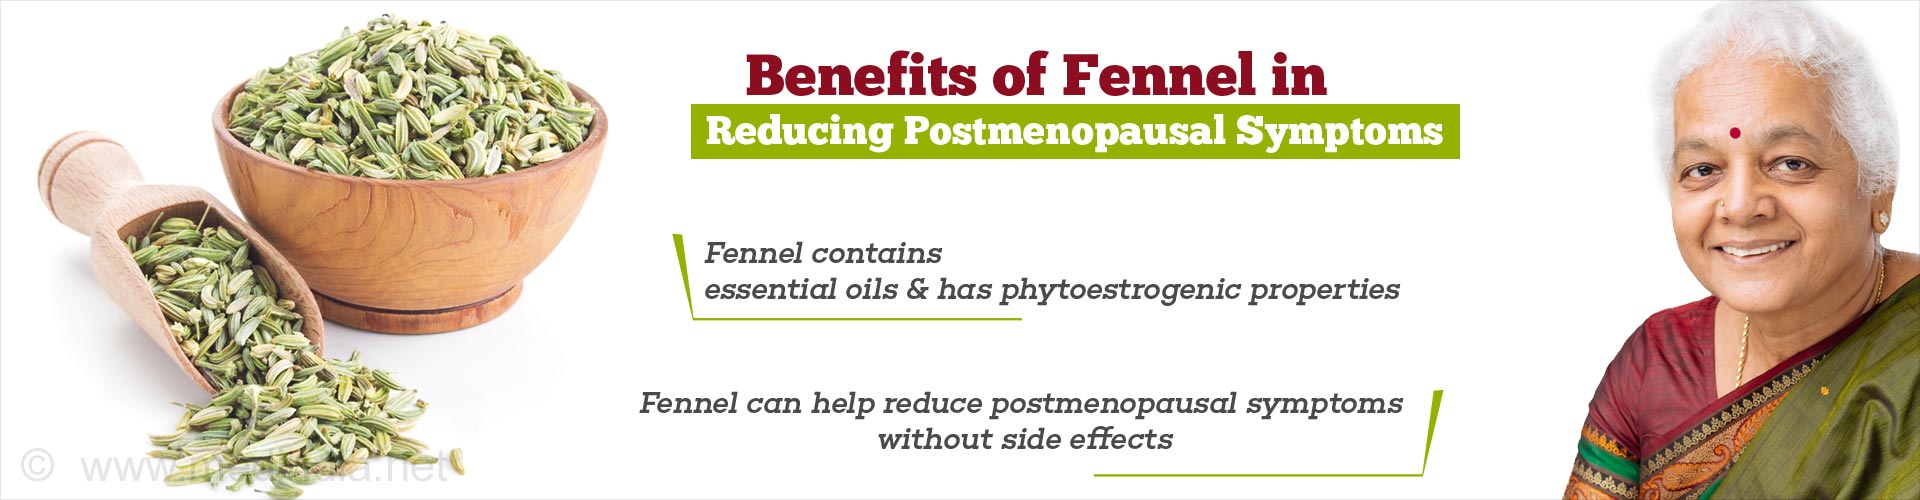 Fennel can Help Reduce Post-Menopausal Symptoms